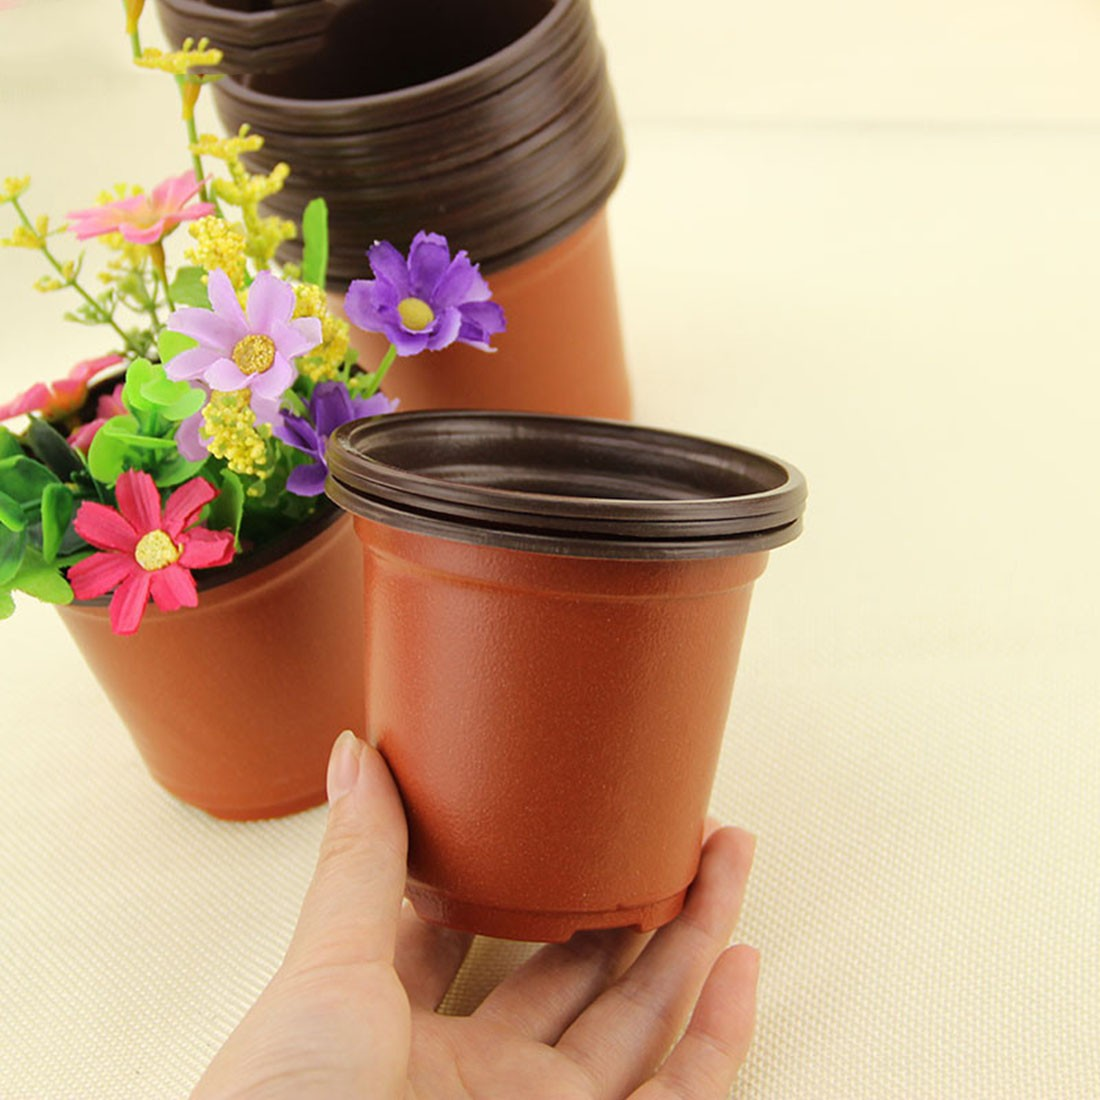 AliExpress & US $2.19 30% OFF|Small Flower Pot 20Pcs/set Plastic Unbreakable Round Flower Pot Nursery pots Planter Home Garden Decor 9 X 8 X 6cm-in Flower Pots \u0026 ...